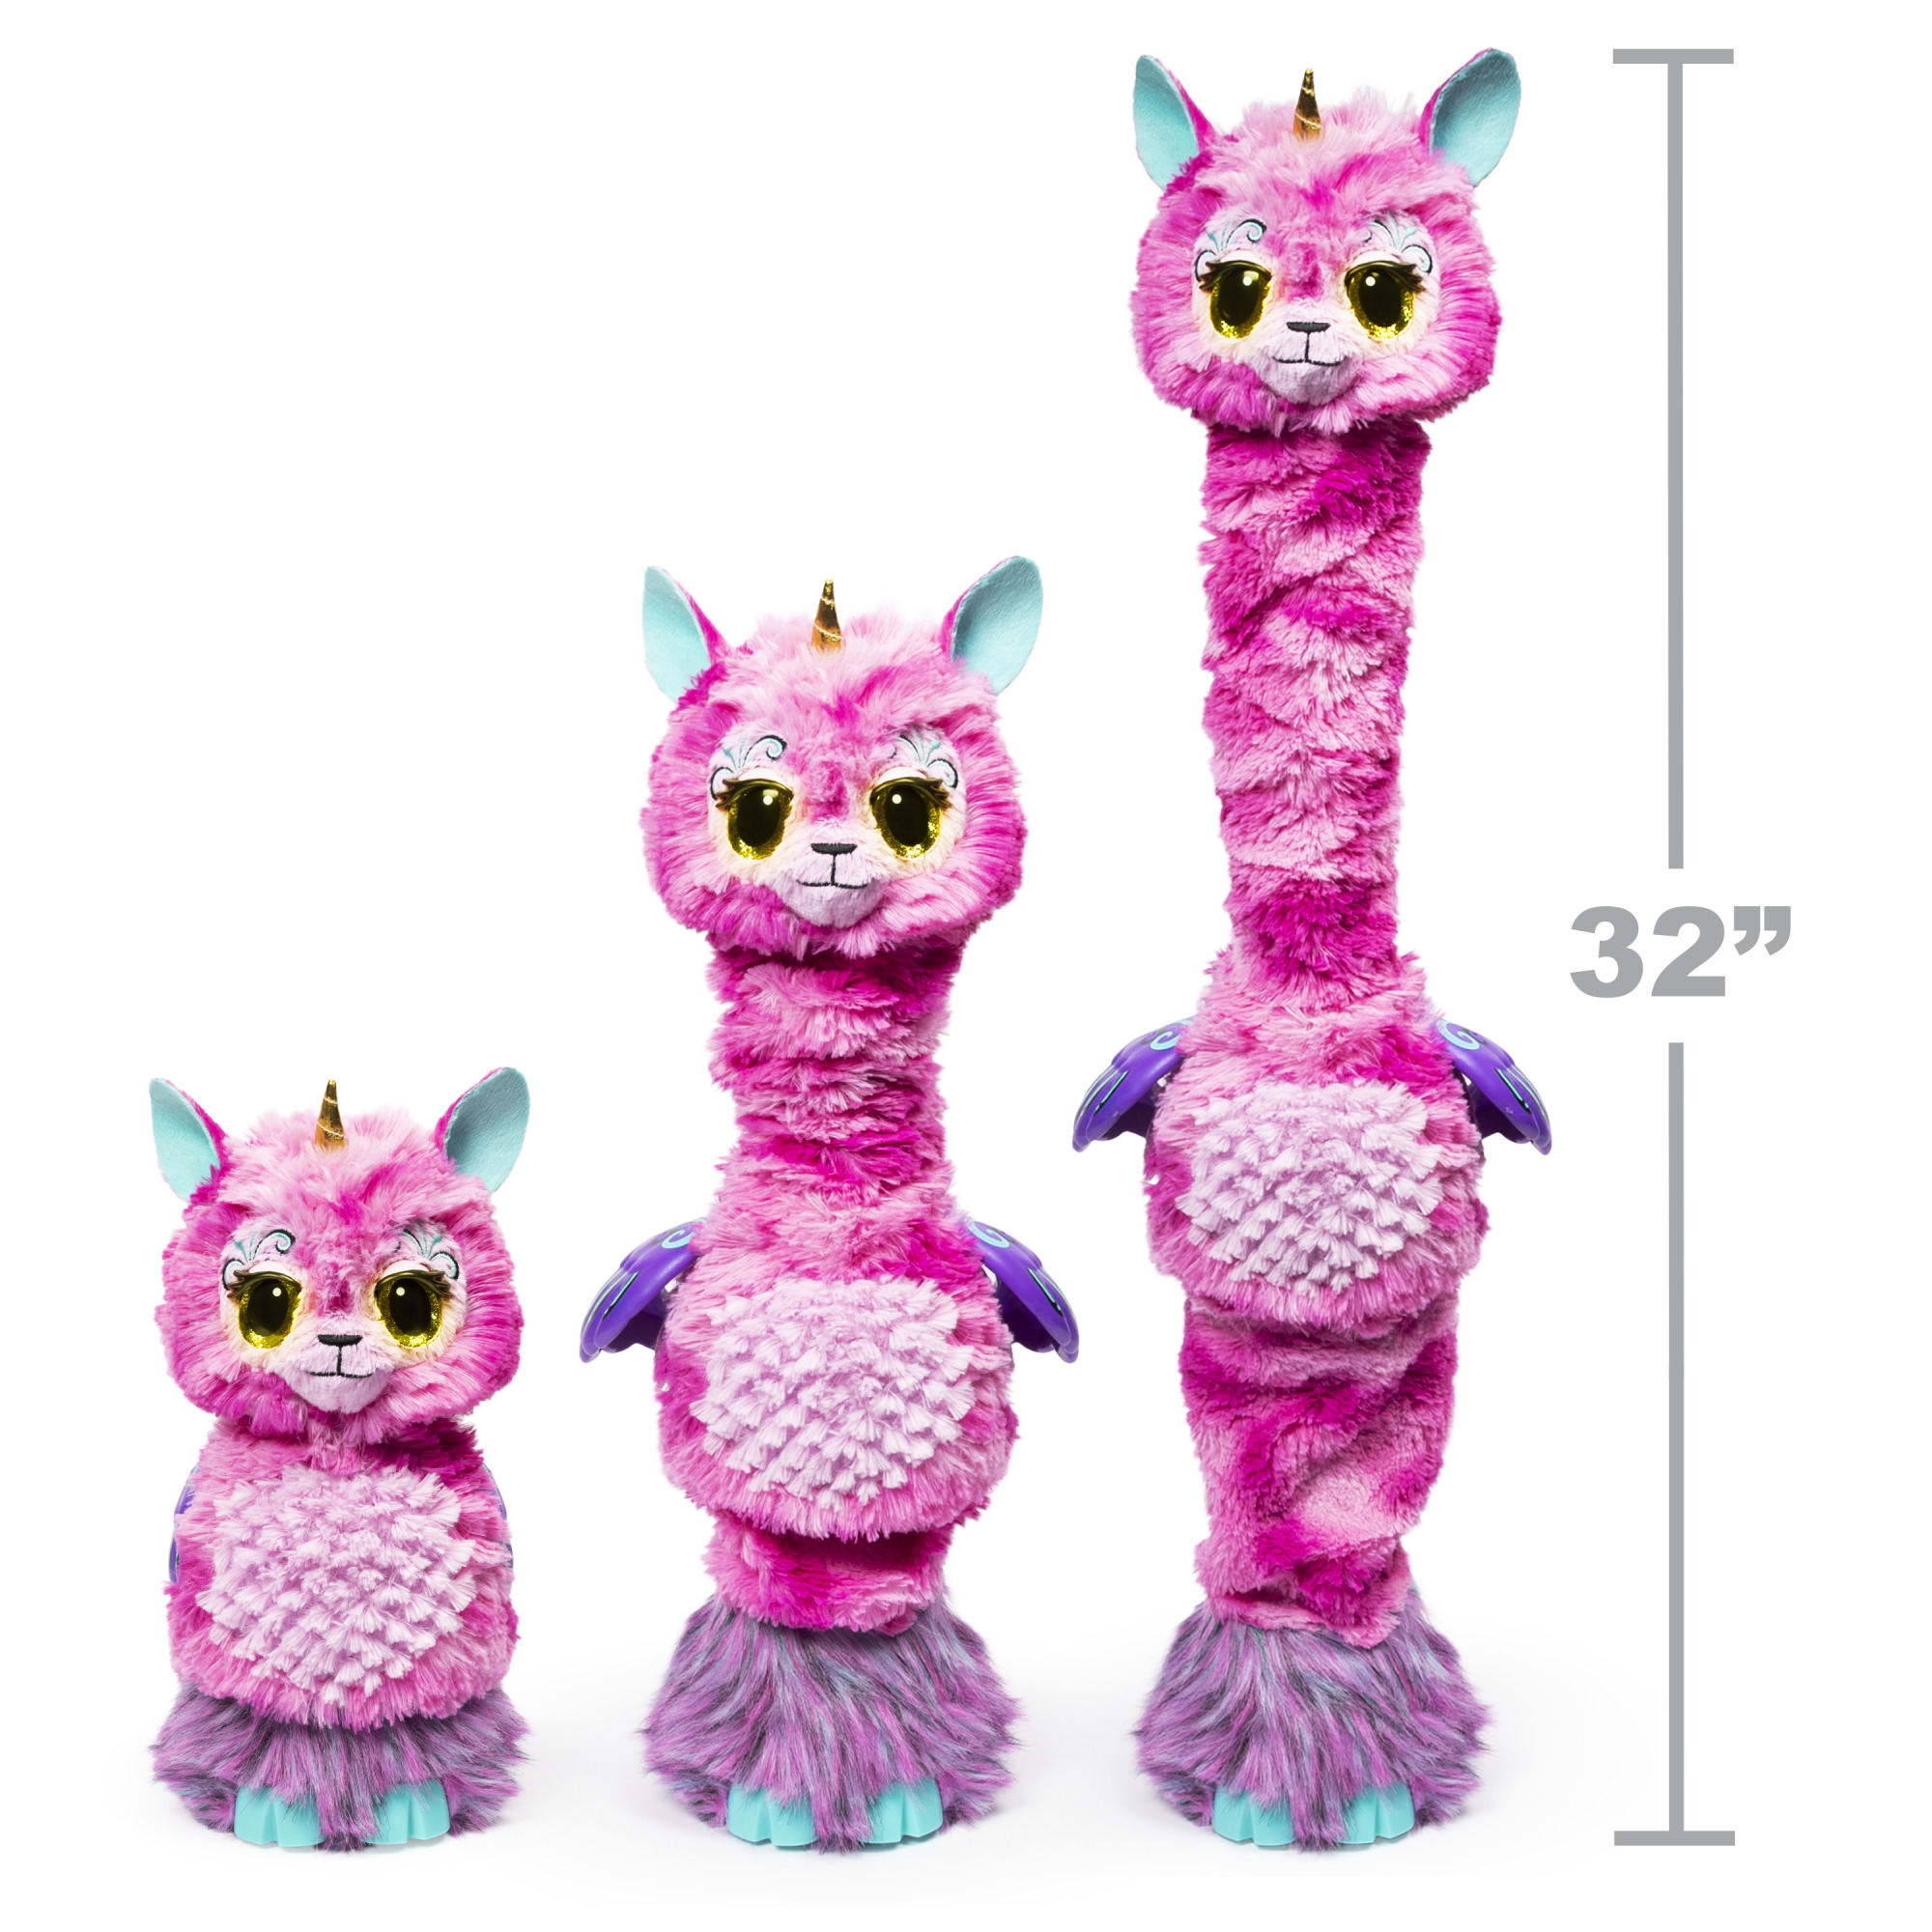 778988562239_20108325_Hatchimals Wow_Pink_GBL_Product_30